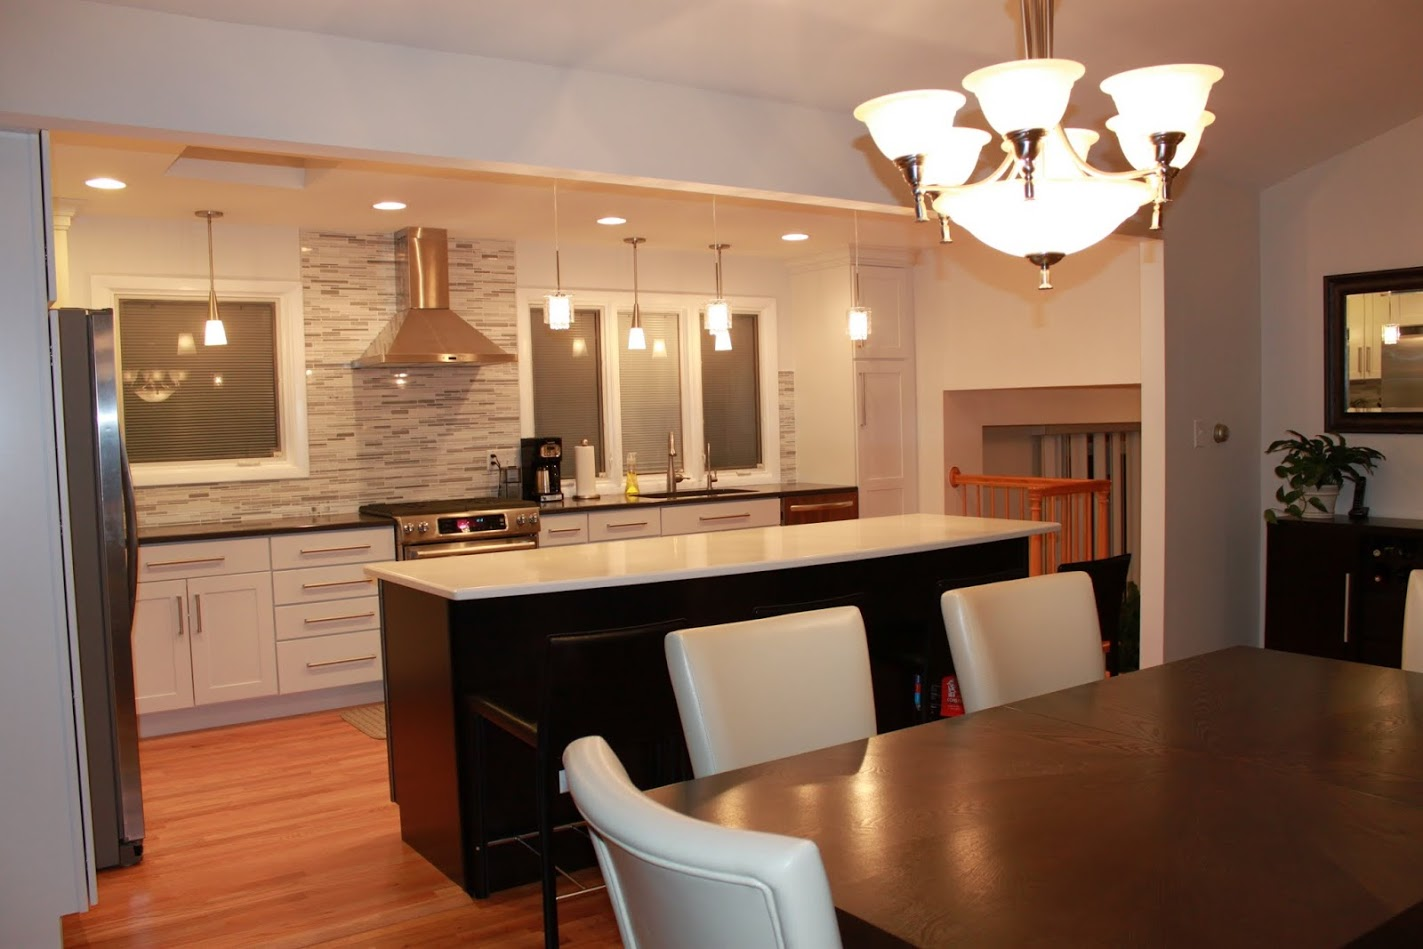 Two-Toned White and Kona Kitchen in Morton Grove